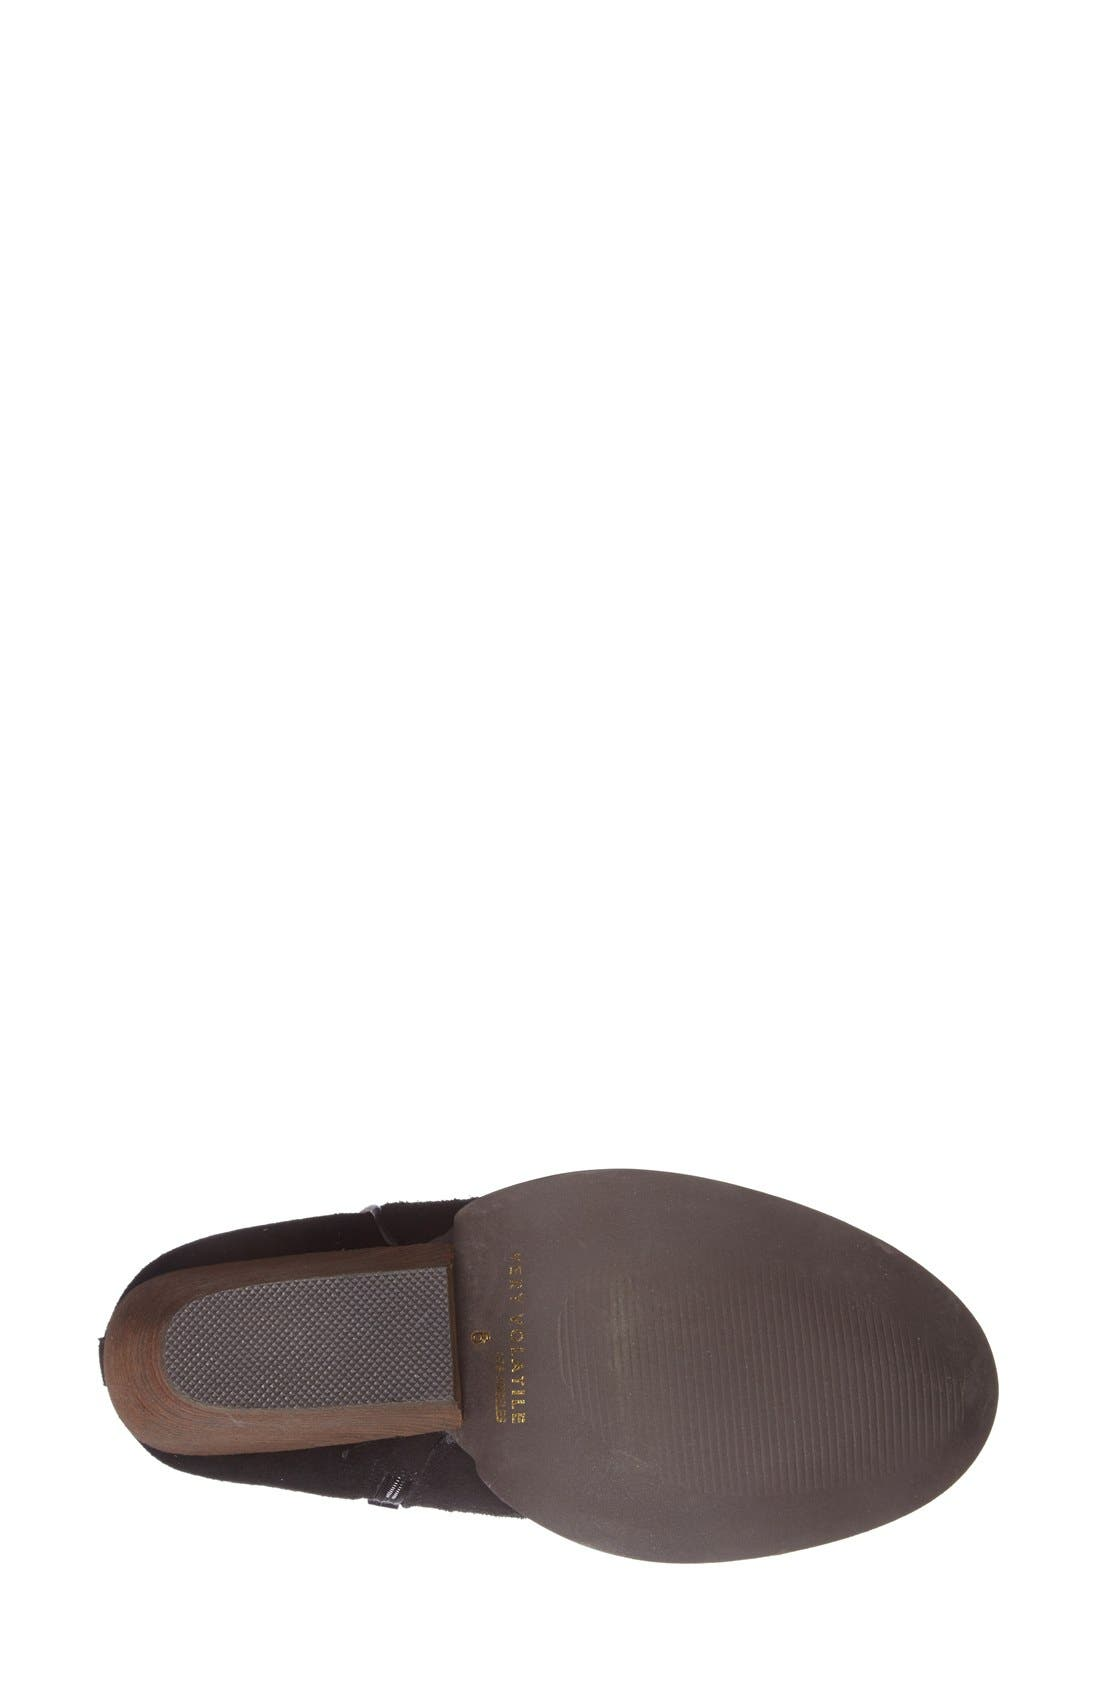 'Whitby' Demi Wedge Bootie,                             Alternate thumbnail 3, color,                             001